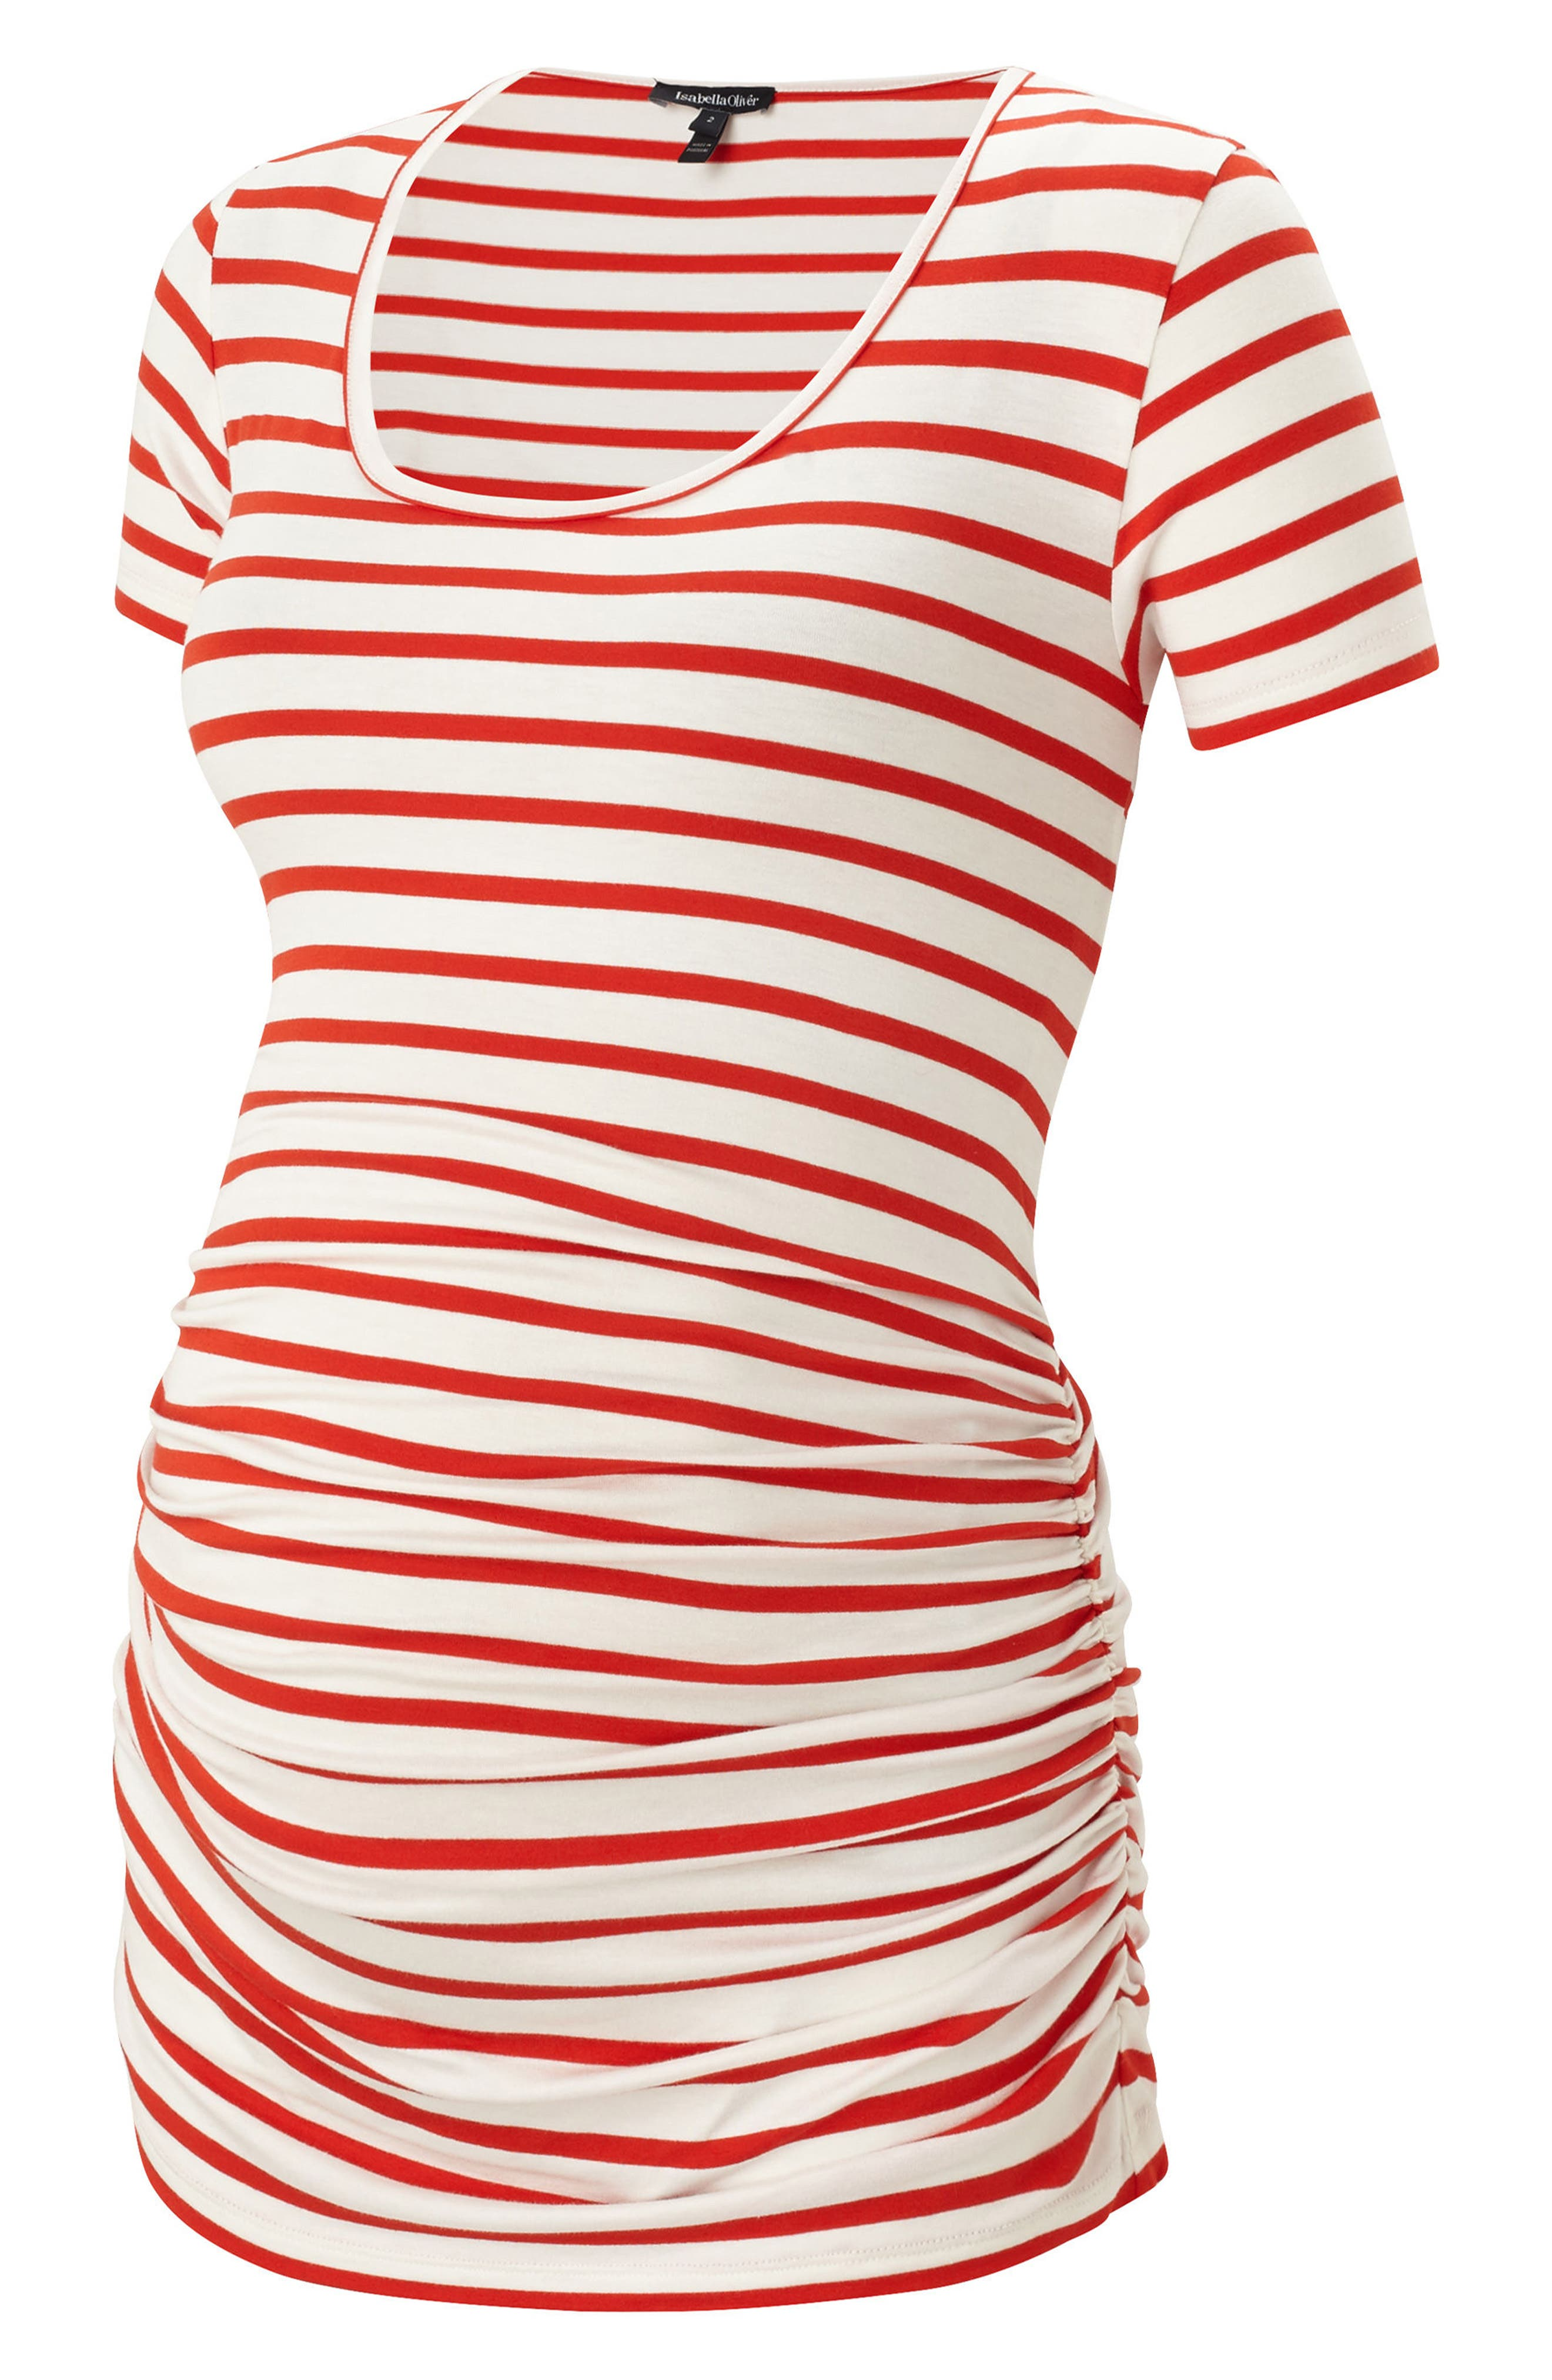 Nia Ruched Maternity Top,                         Main,                         color, Red/ White Stripe